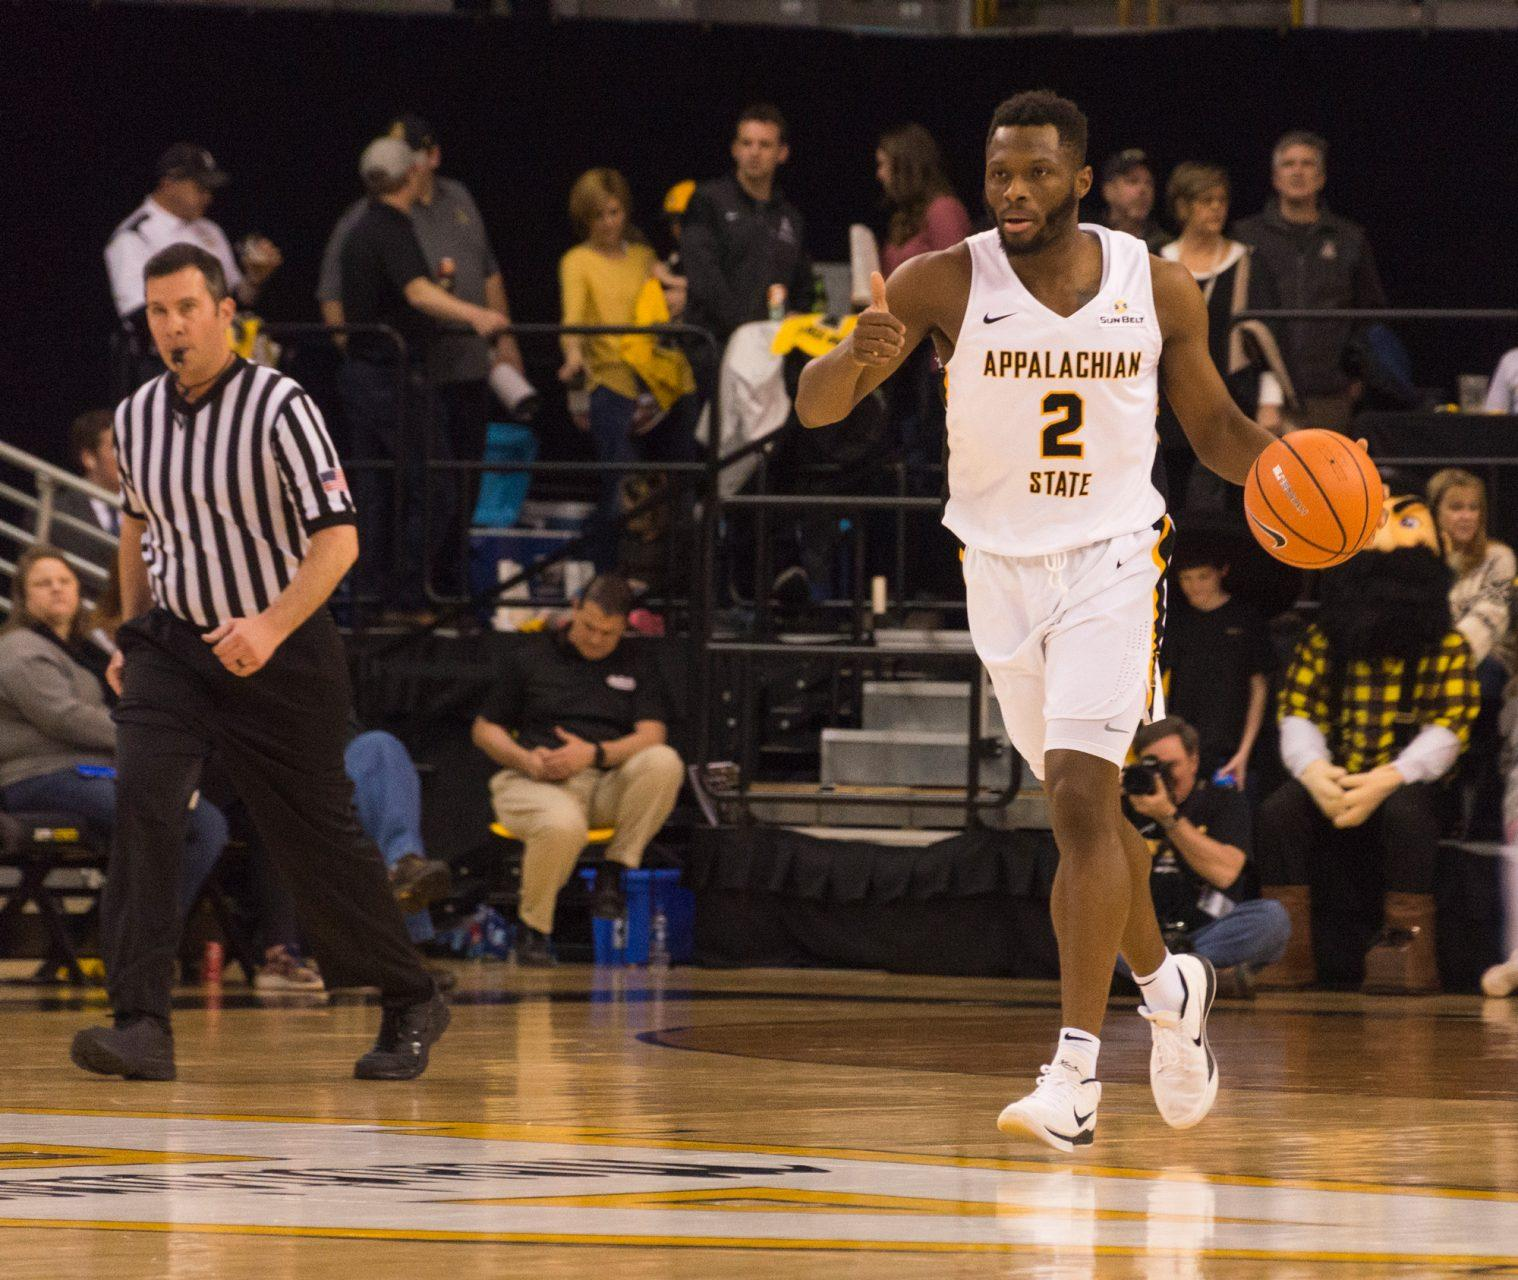 NBA draft hopeful Ronshad Shabazz brings the ball up the floor during a Mountaineer home game. Shabazz finished his career ranked first in App State history with 712 field goals made and second in points with 2,067.